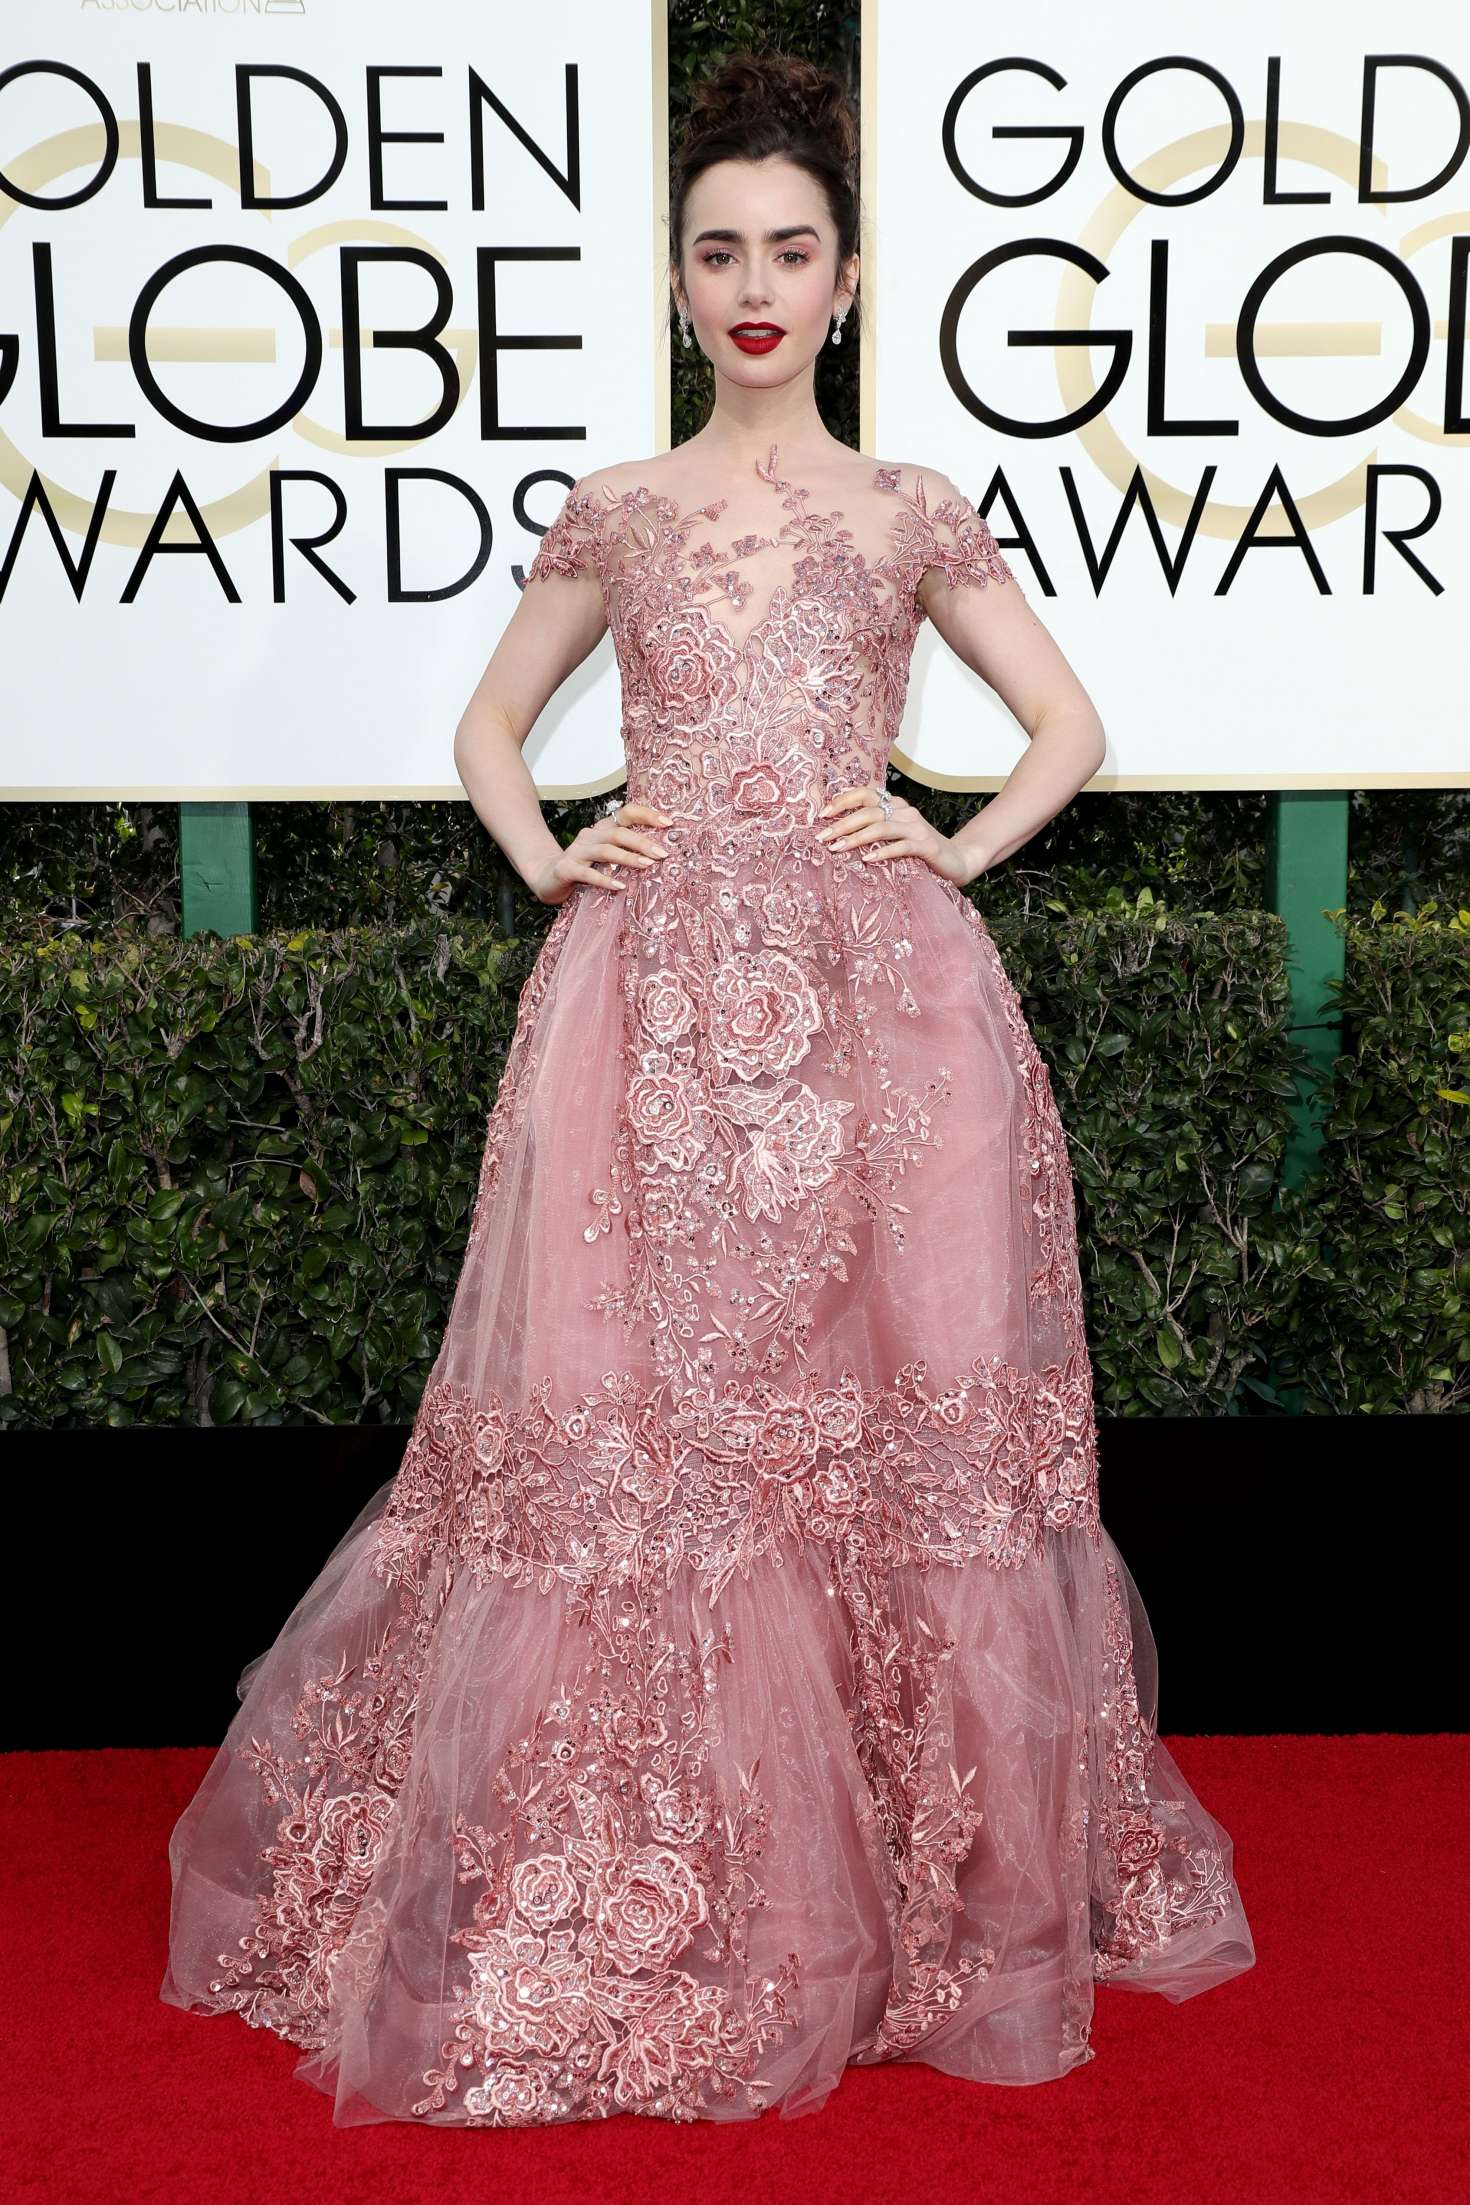 lily-collins-74th-annual-golden-globe-awards-04